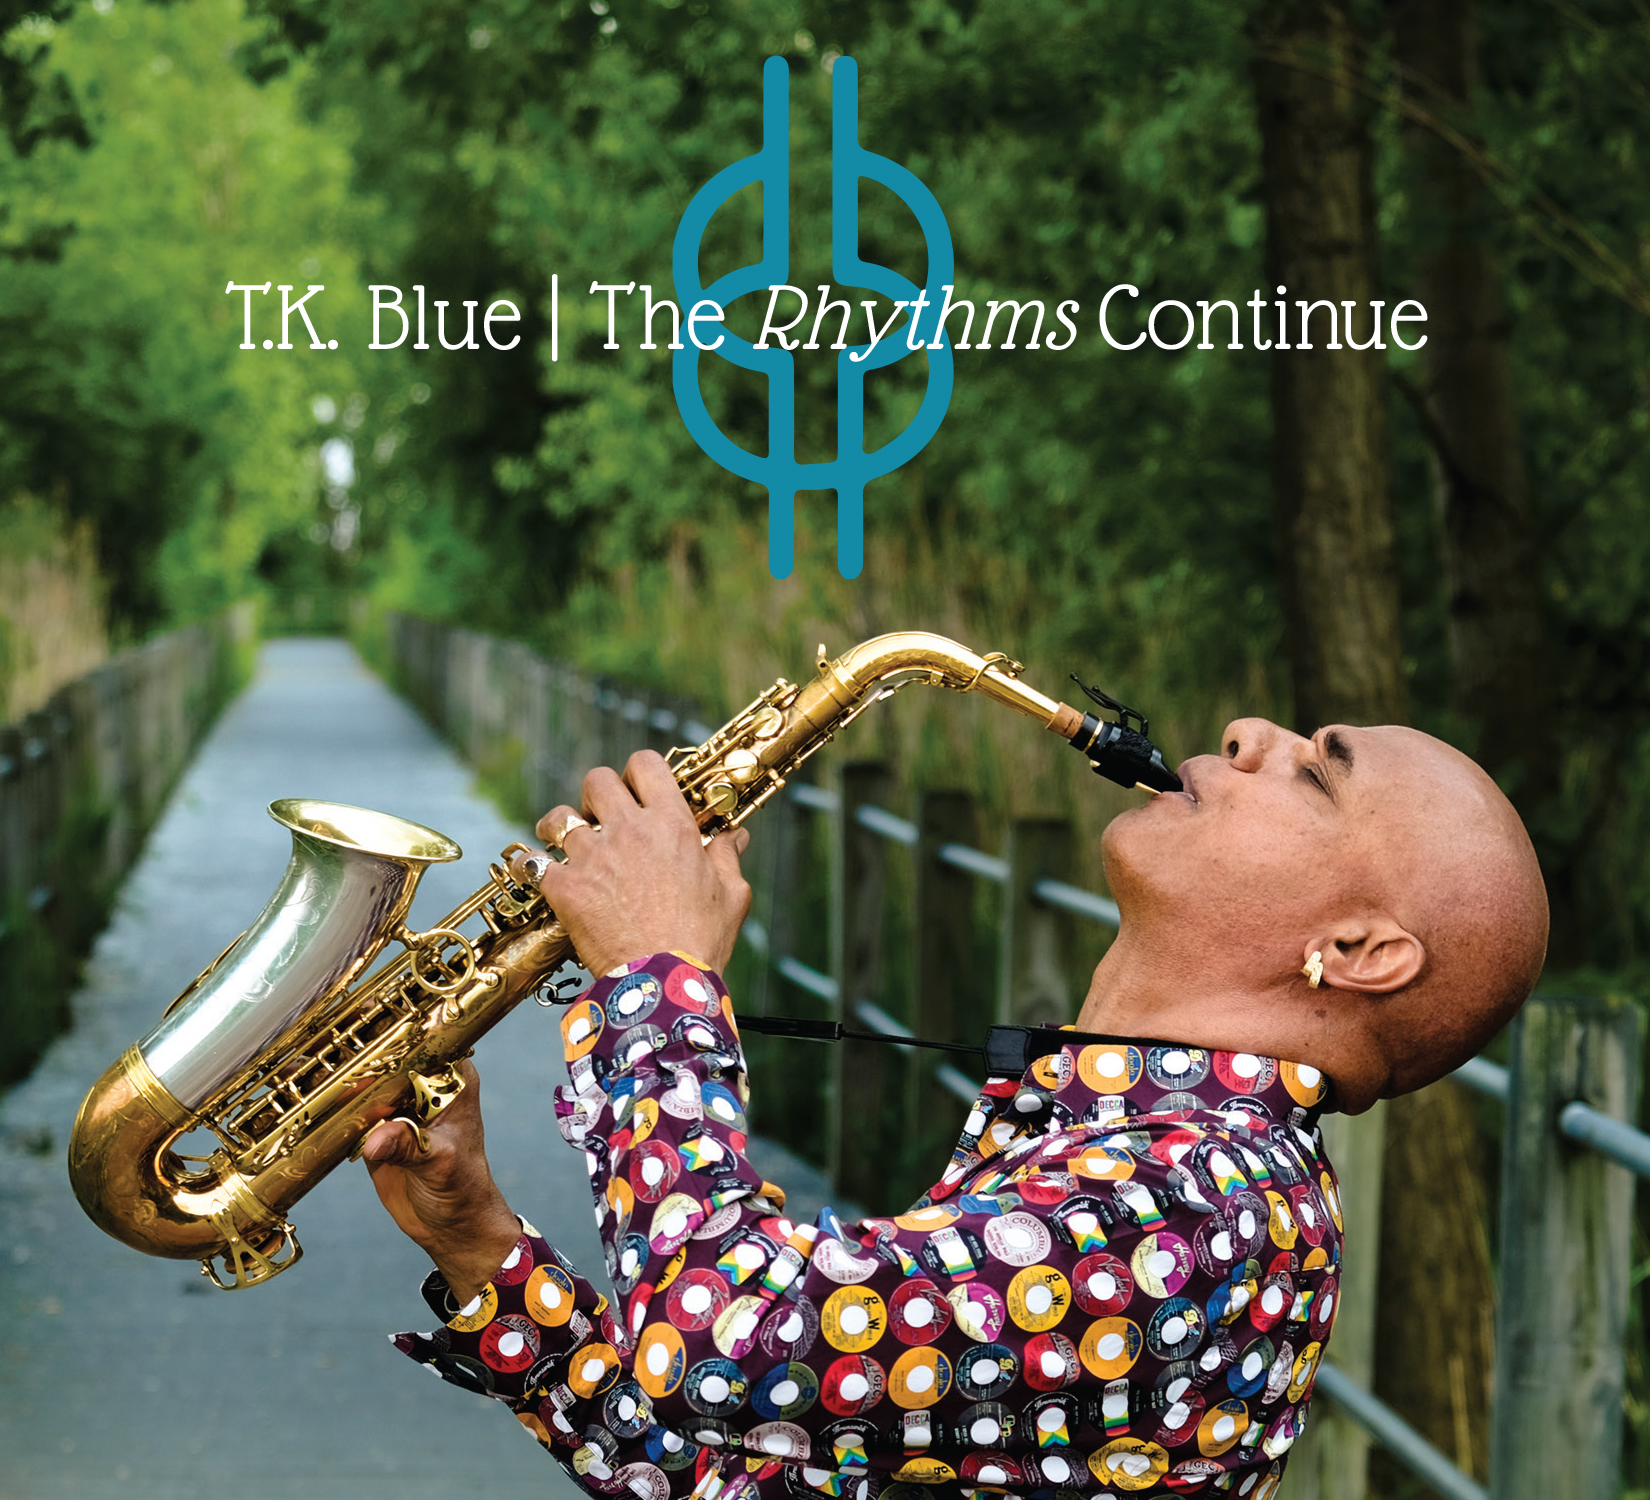 INTERVIEW: Willard Jenkins Talks to T.K. Blue